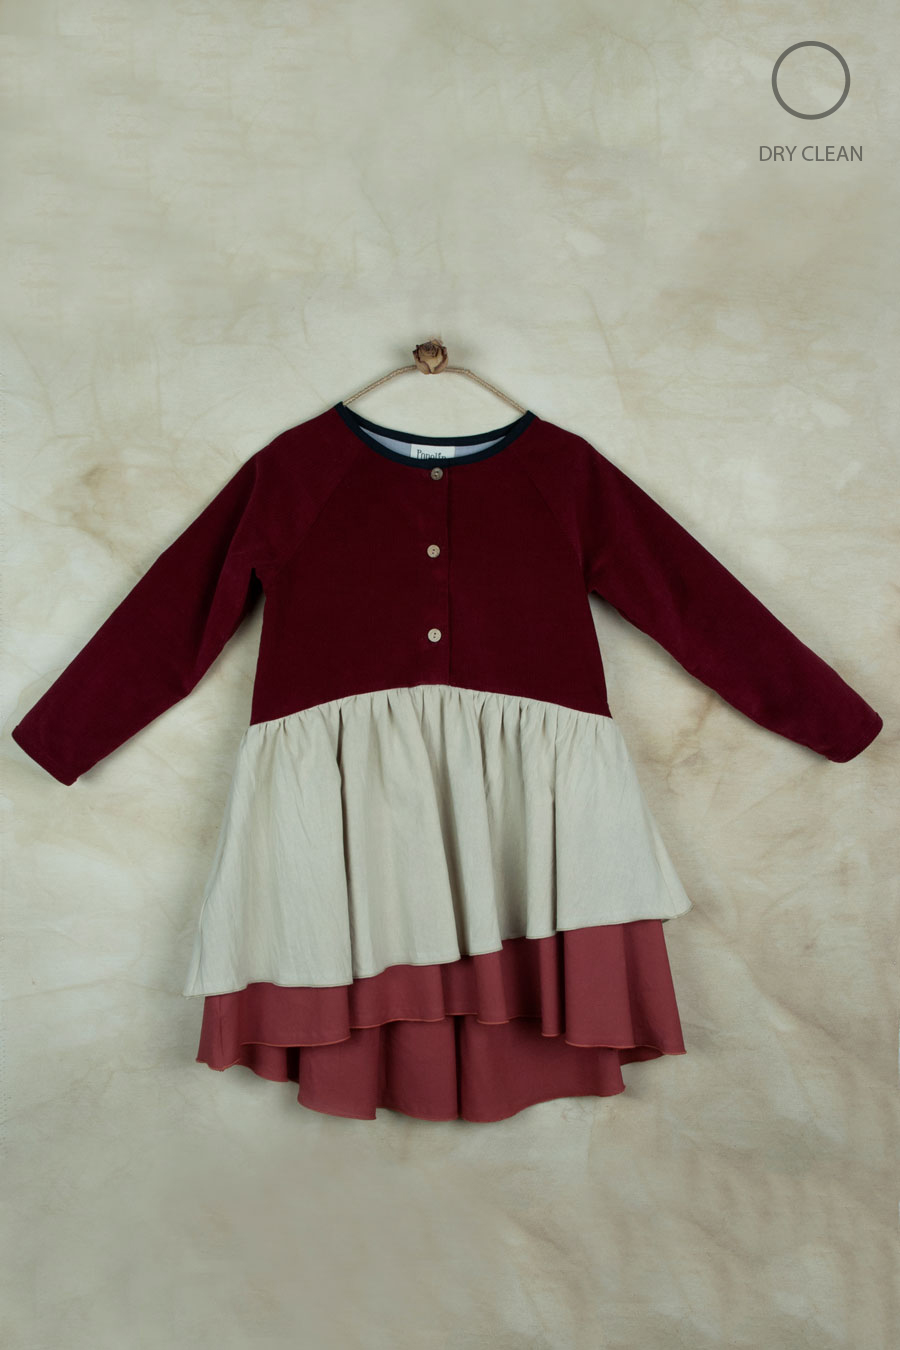 Mod.21.3 - Burgundy Dress with Raglan Sleeve | AW18.19-Mod.21.3 - Burgundy Dress with Raglan Sleeve